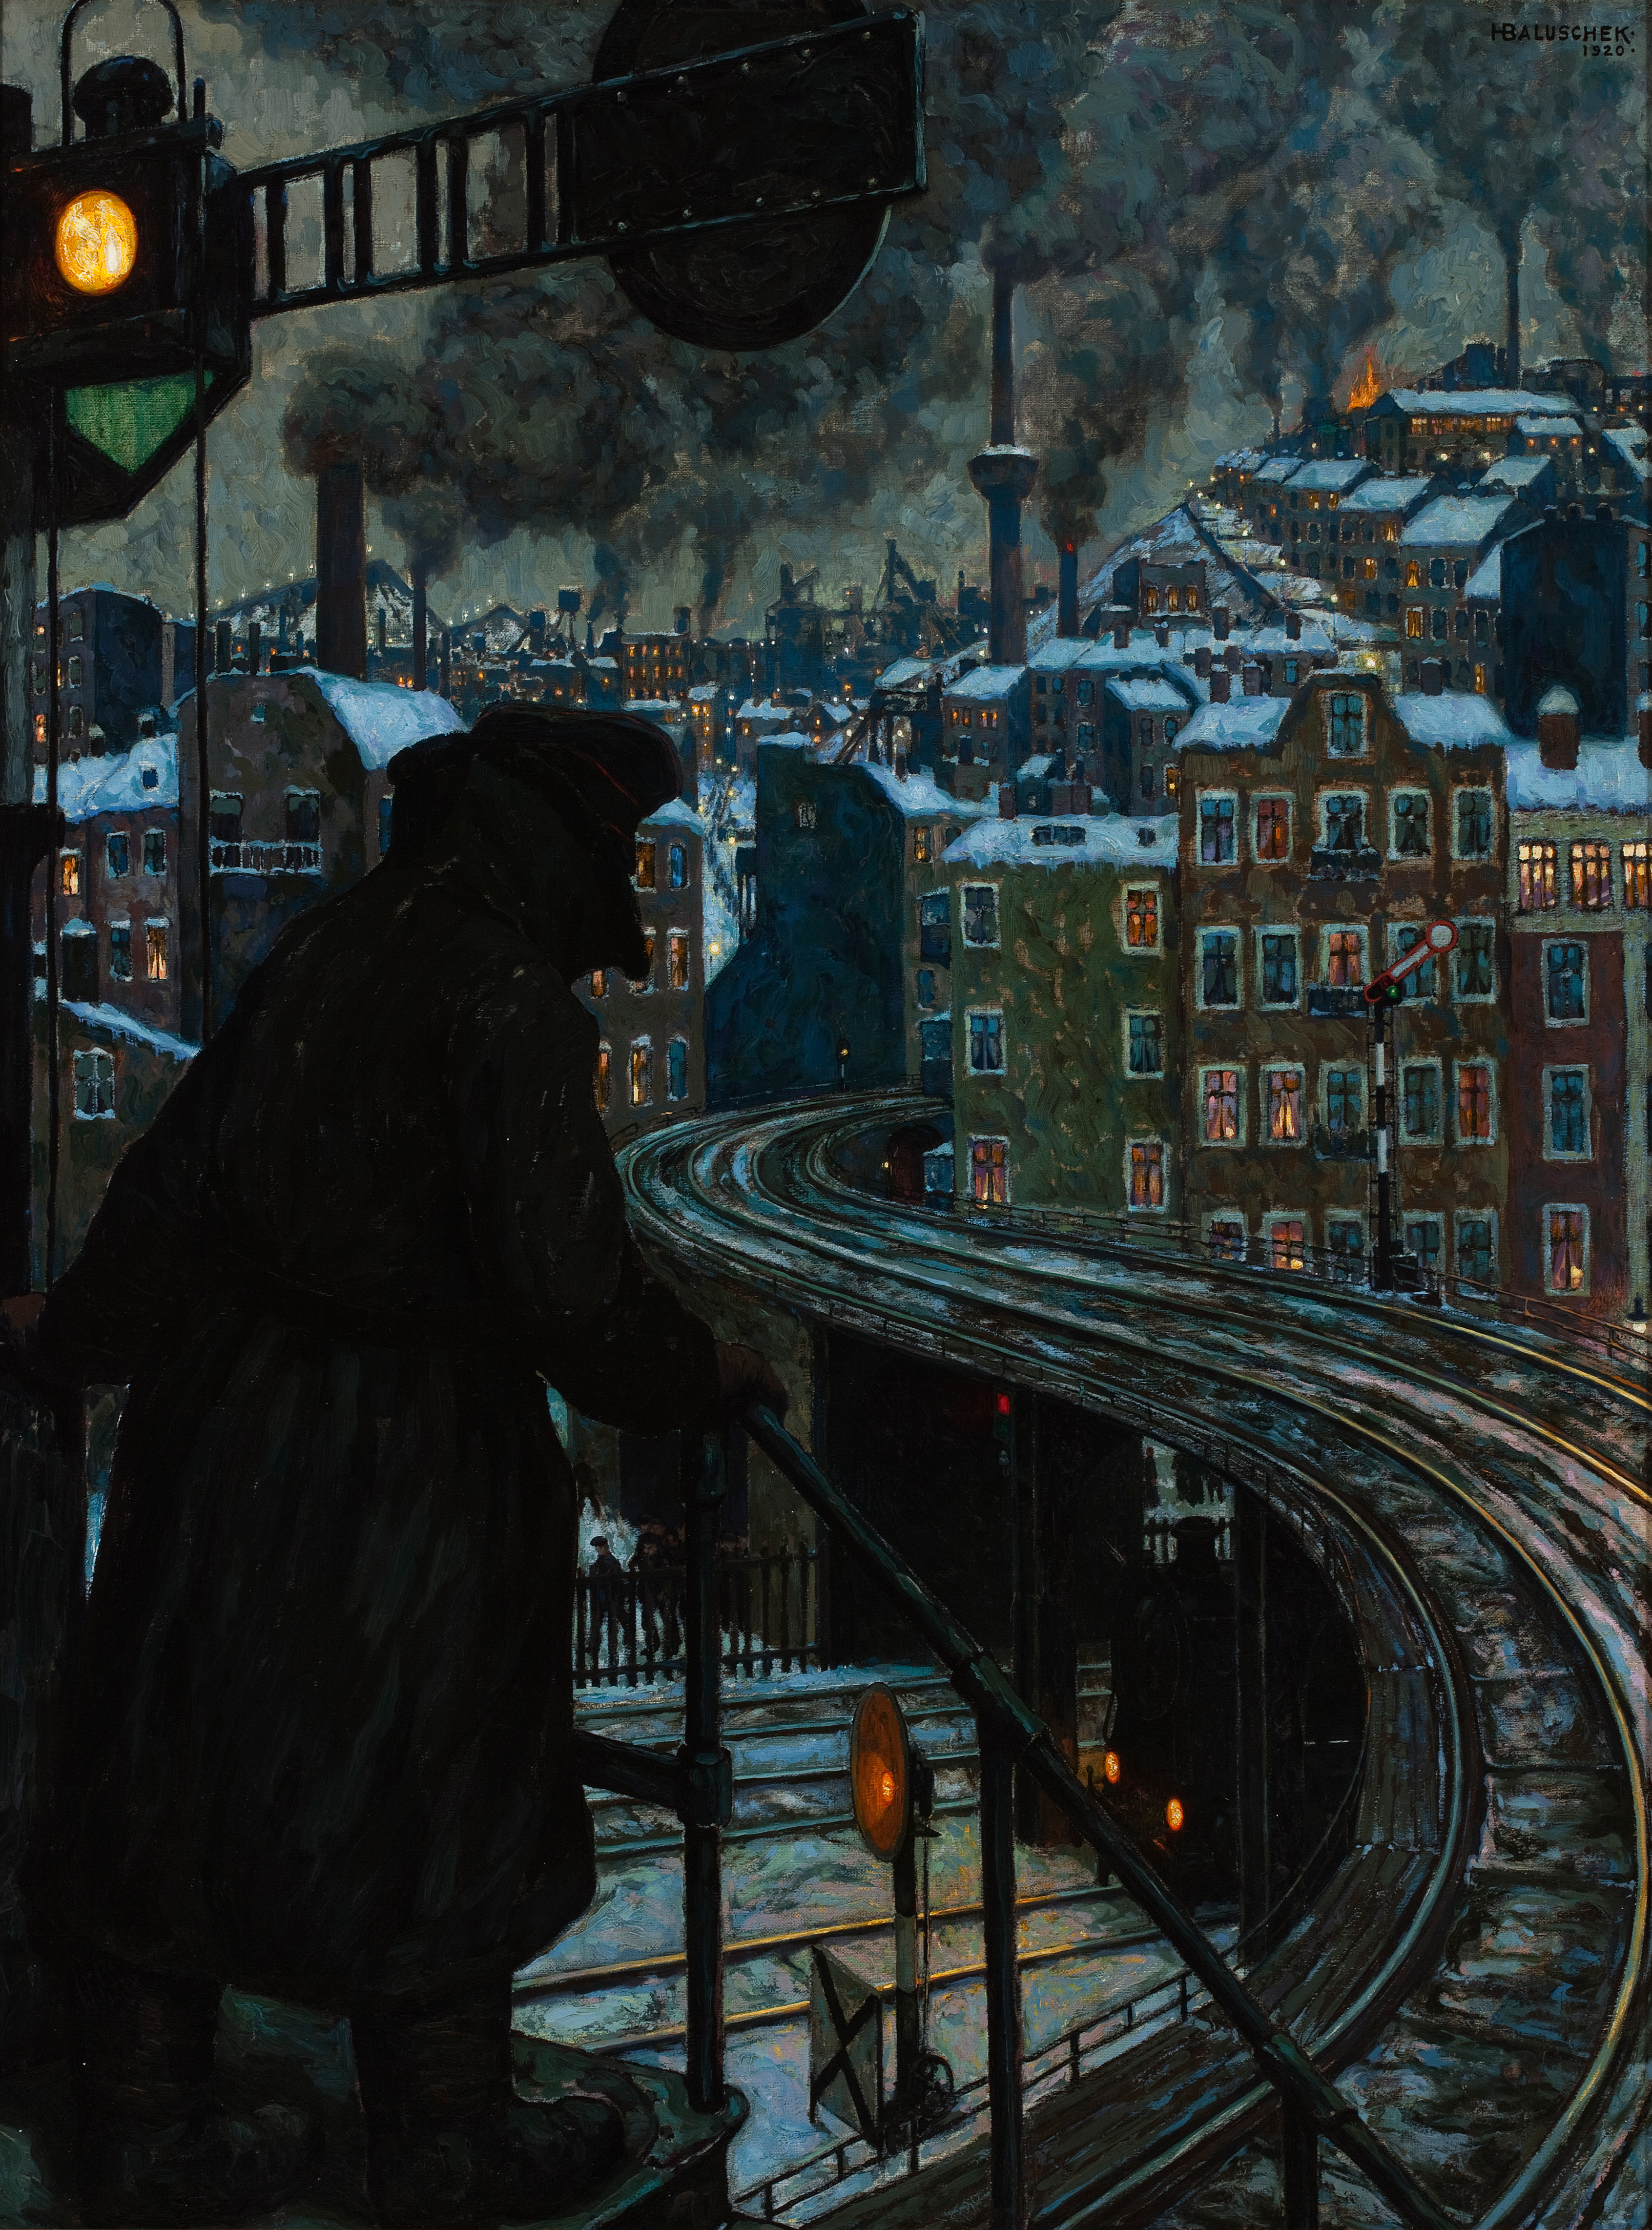 Hans Baluschek (German, 1870–1935), Arbeiterstadt (Working-class City), 1920. Oil on Canvas, 48 7/16 x 36 1/4 in. Milwaukee Art Museum, Purchase with funds from Avis Martin Heller in honor of the Fine Arts Society M2010.49. Photo by John R. Glembin